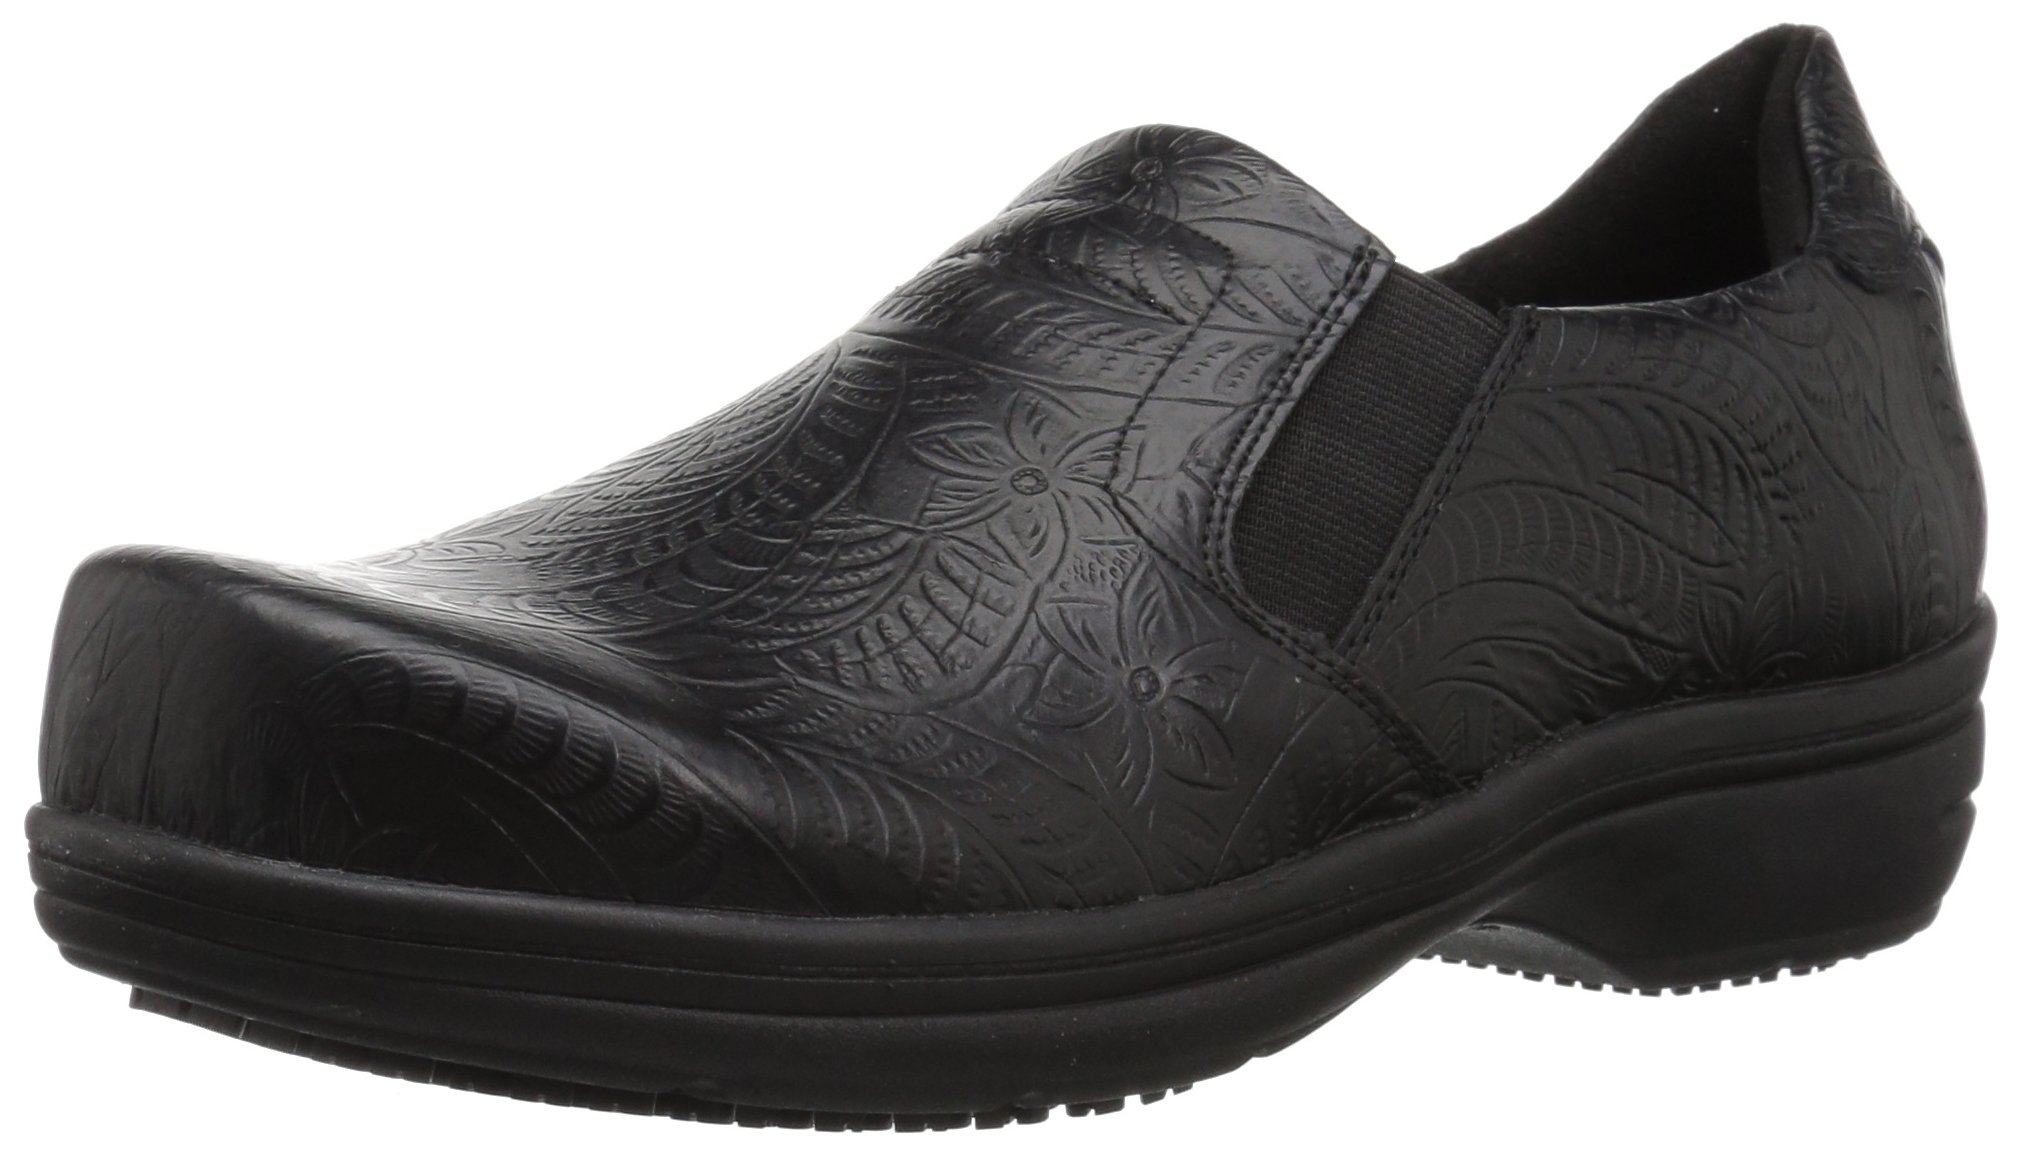 Easy Works Women's Bind Health Care Professional Shoe, Black Embossed, 9.5 W US